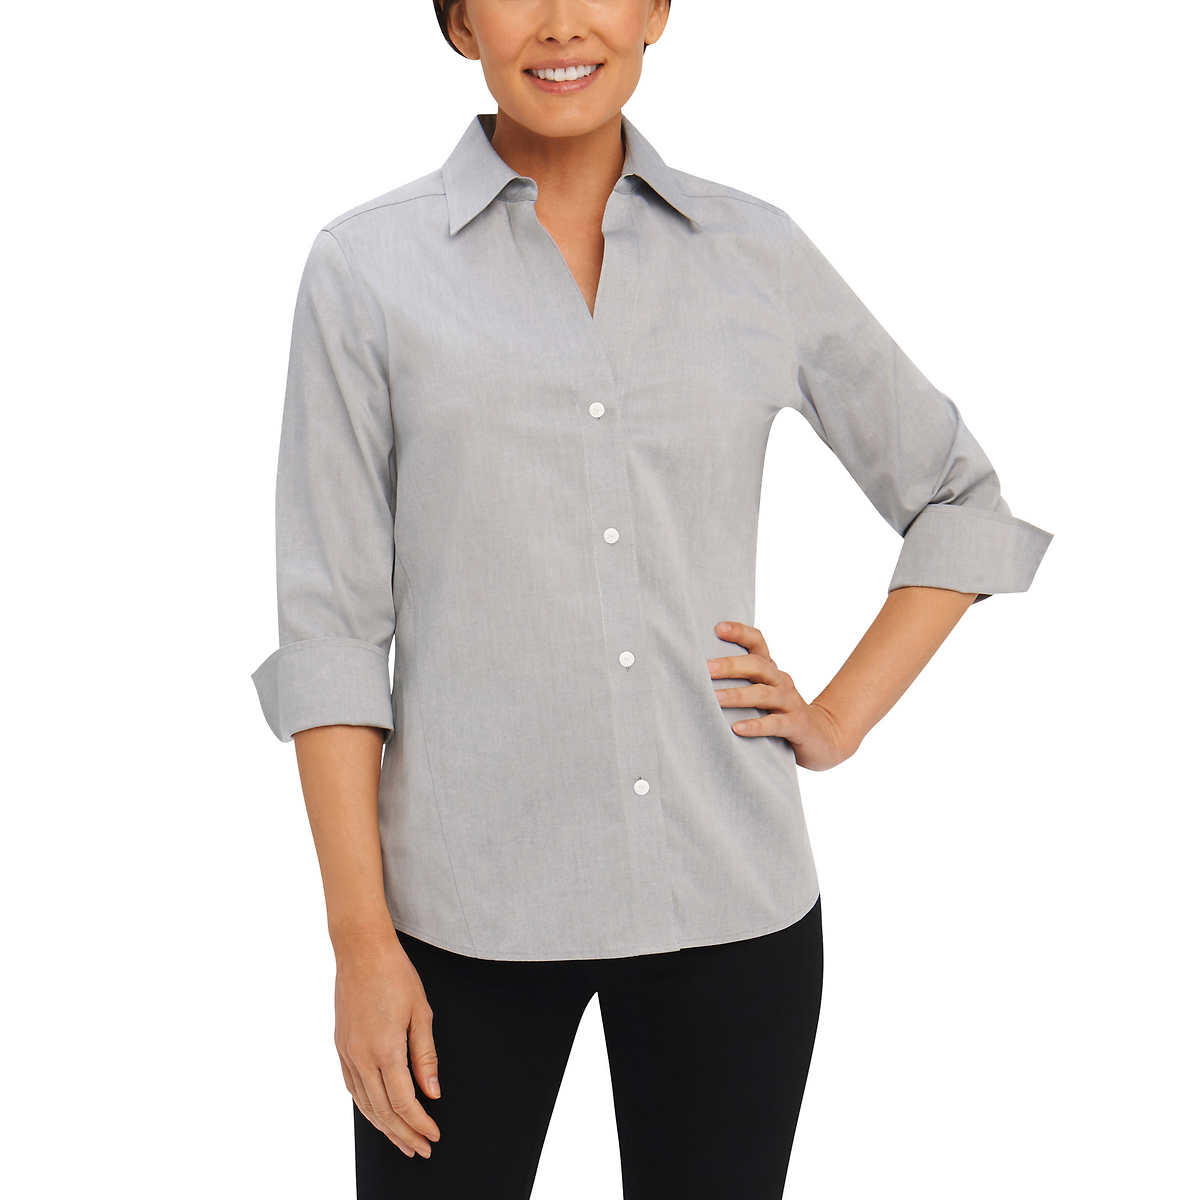 Foxcroft Women's Non-Iron Essential Paige Shirt For Women Silver - Small